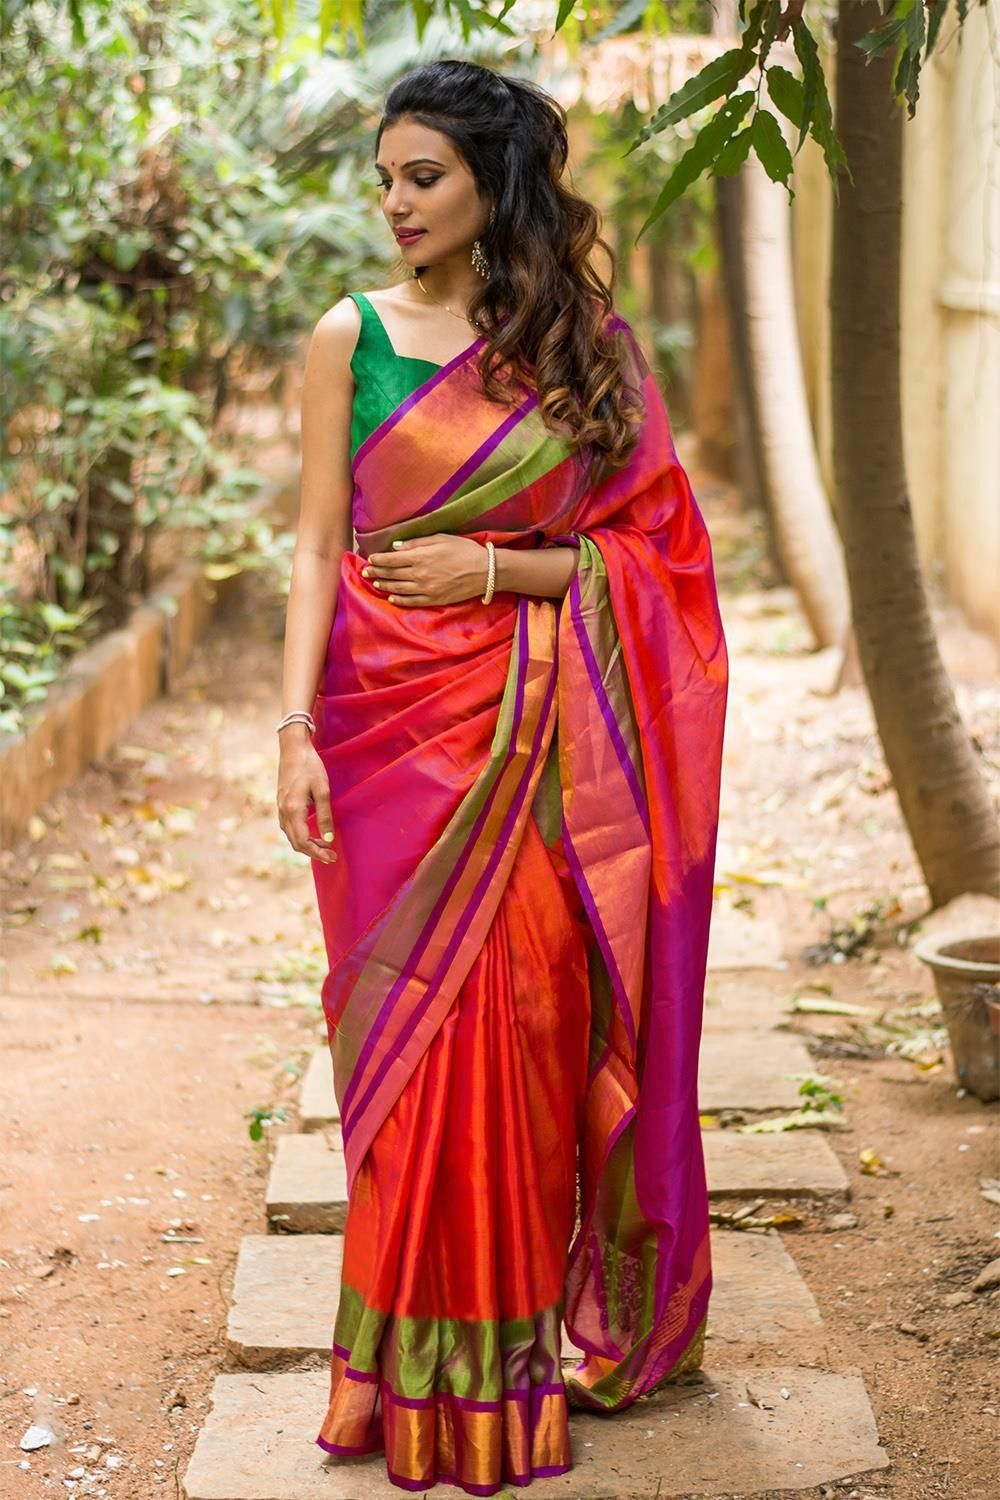 59dd88d99445e Actual Fabric Art Silk Saree Size 5.5 Mtr Blouse Size 0.8 Mtr Actual Color  Multicolour Type Unstitched Pattern Checkered Occasion Casual Wear  Precautions ...